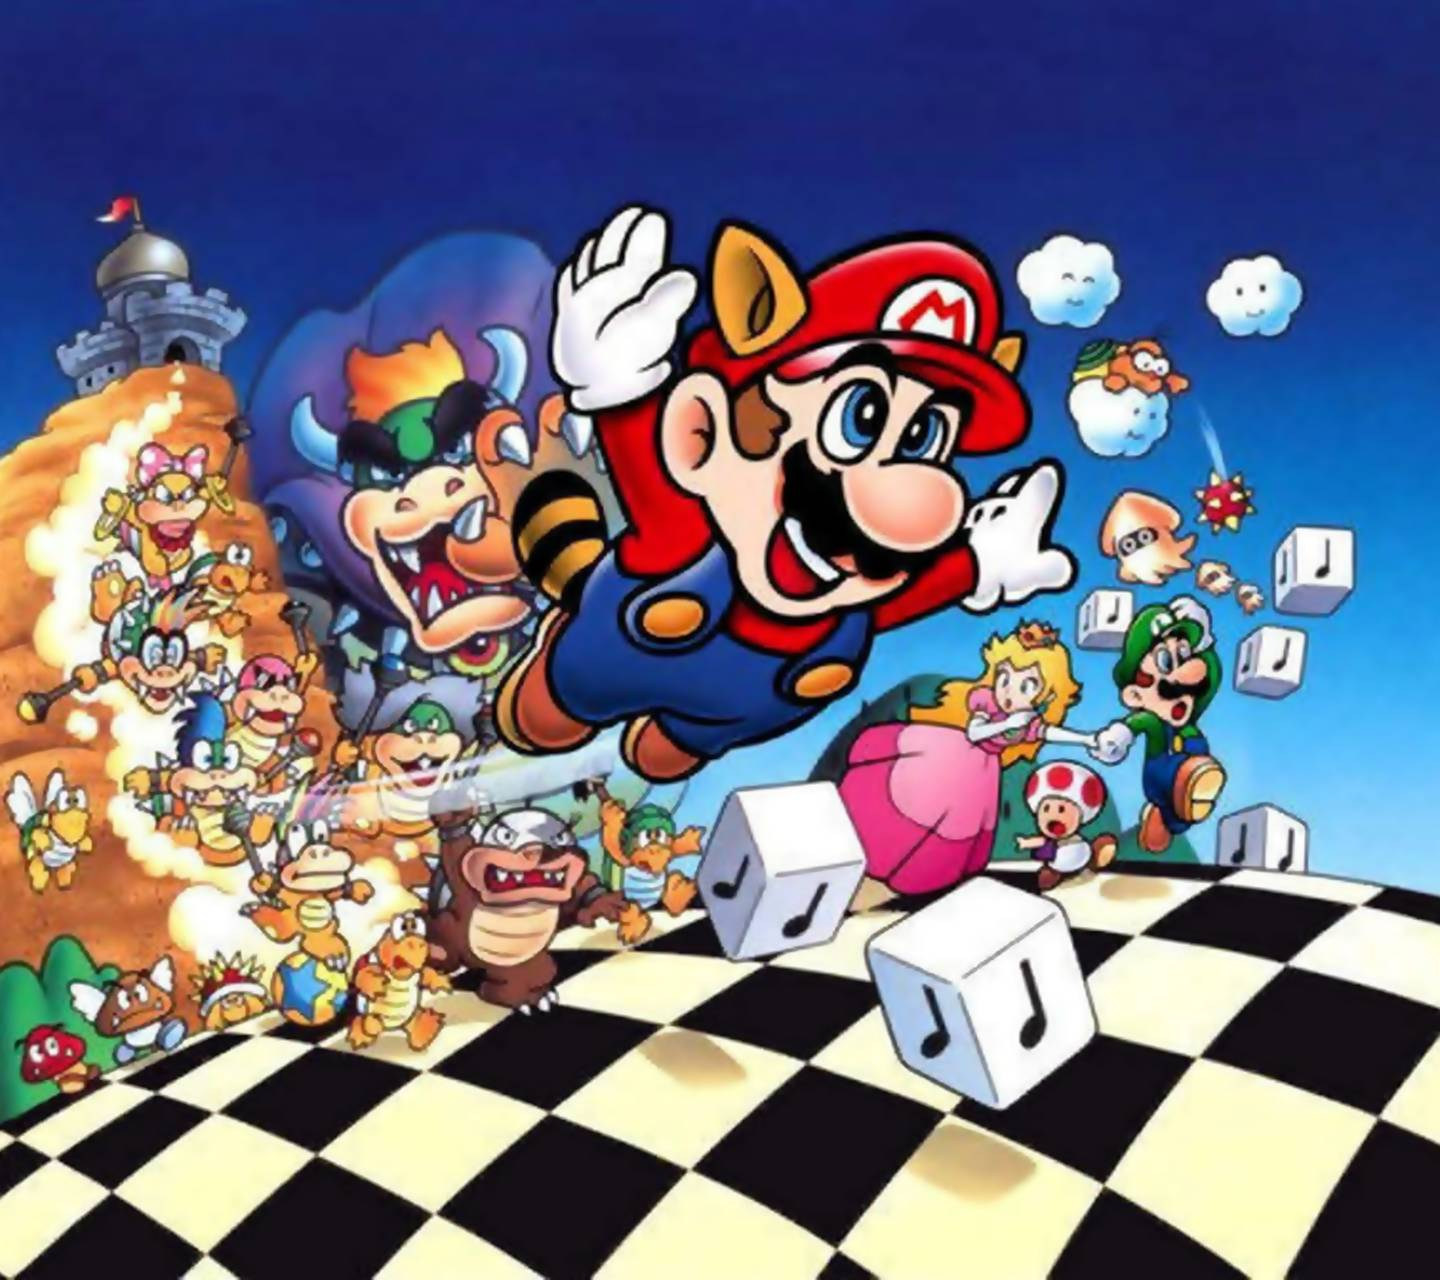 Super Mario Bros. 3 HD Wallpapers and Backgrounds Image